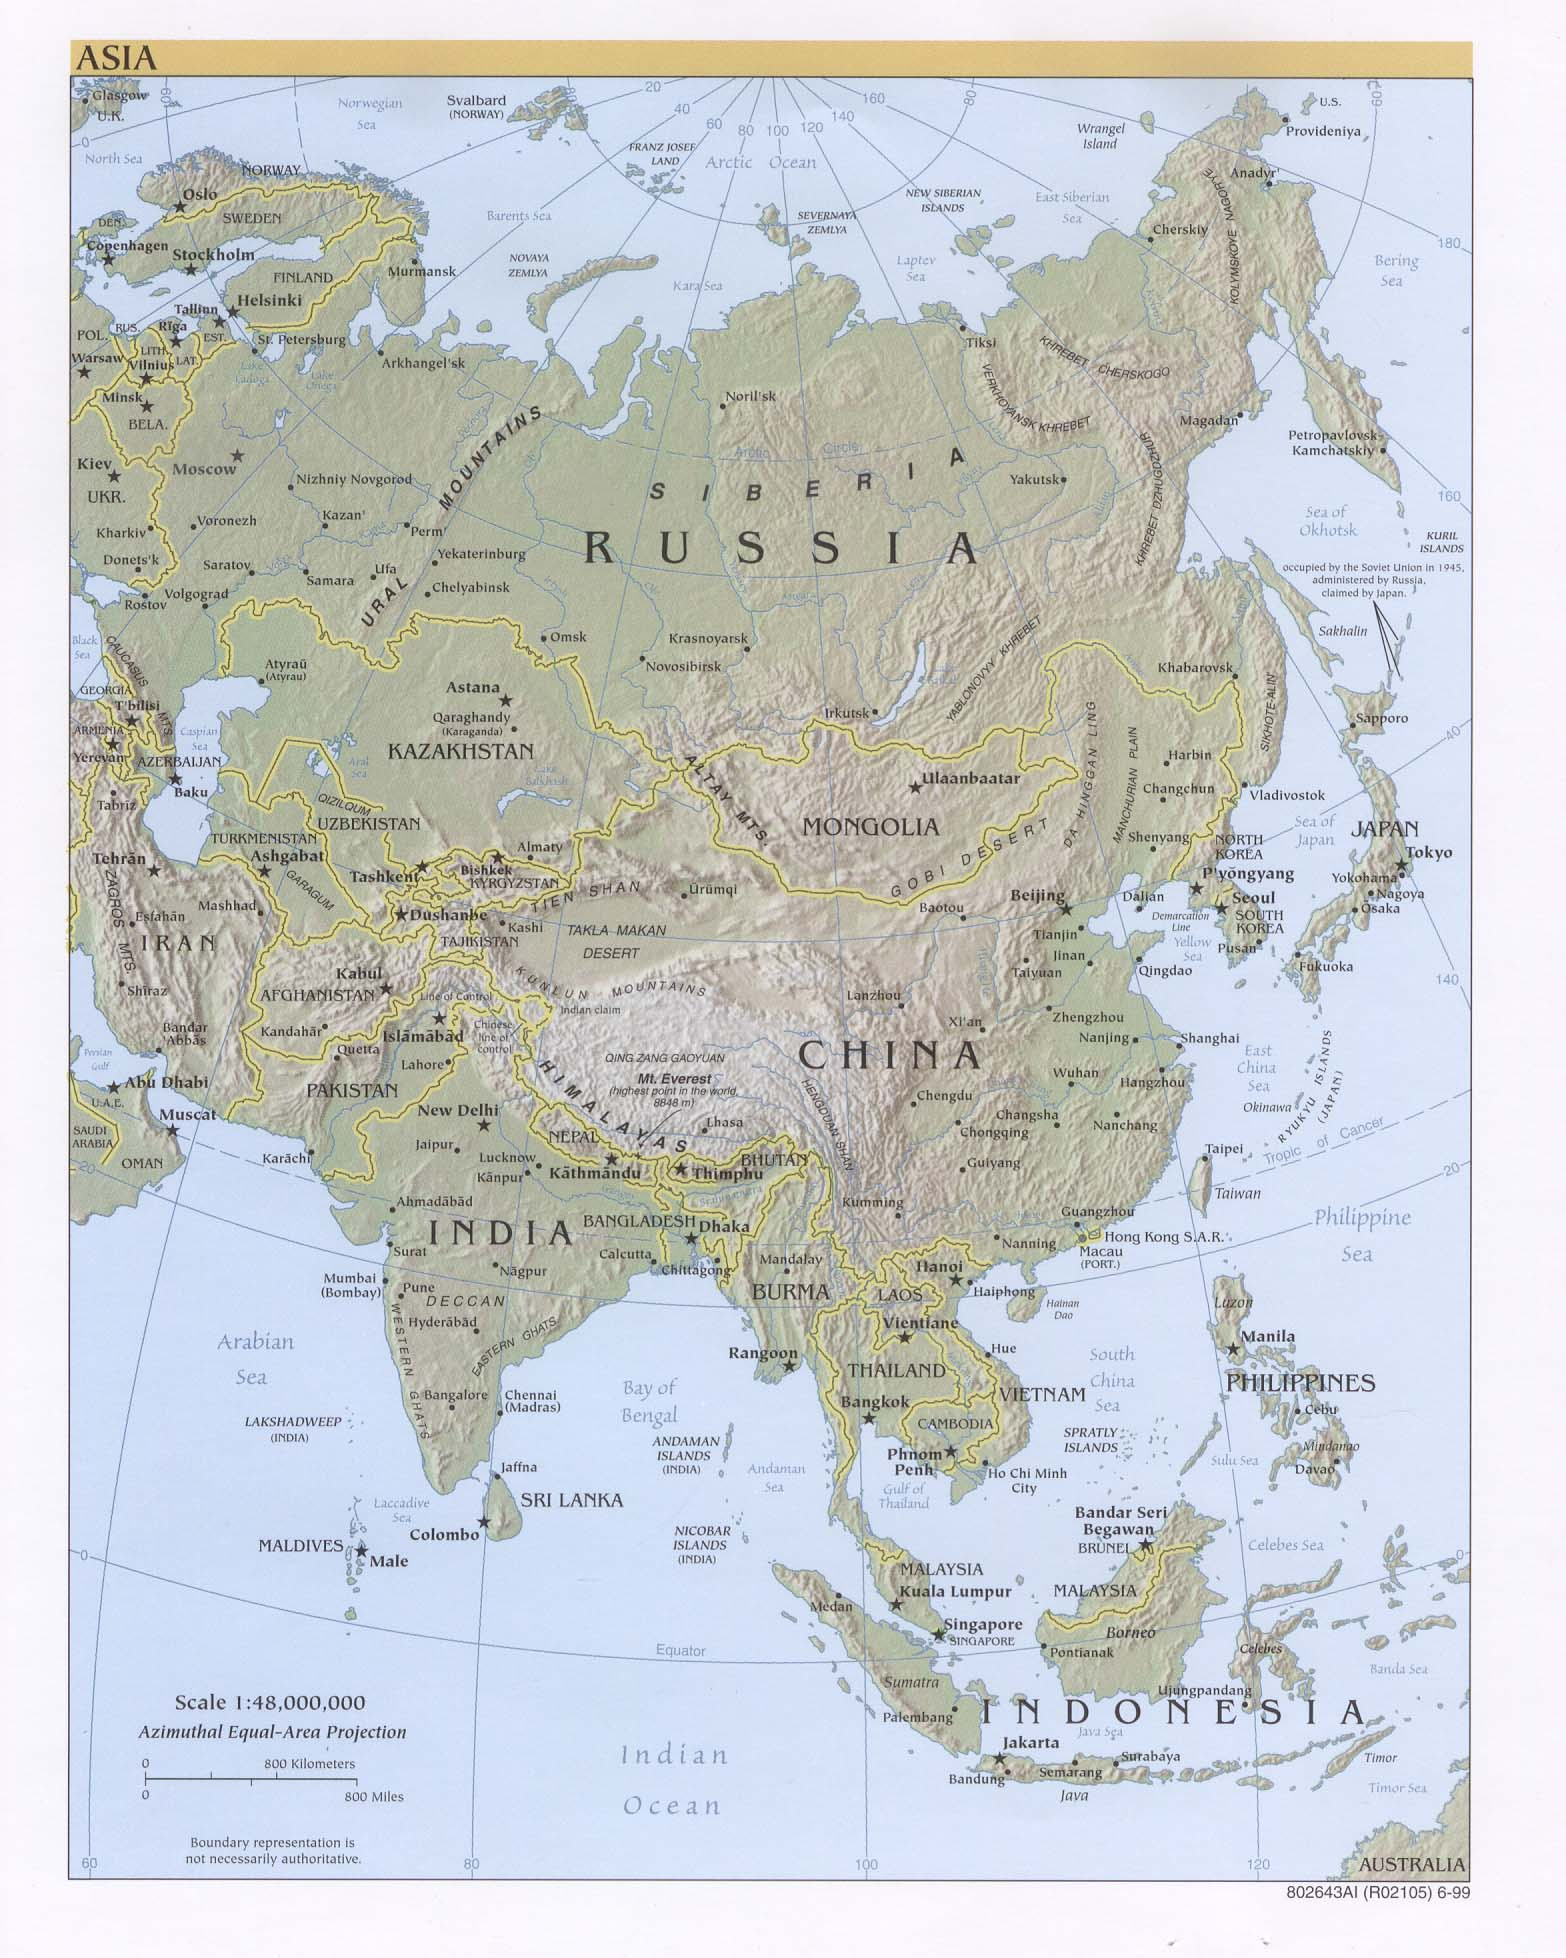 Picture of: Asia Maps Perry Castaneda Map Collection Ut Library Online